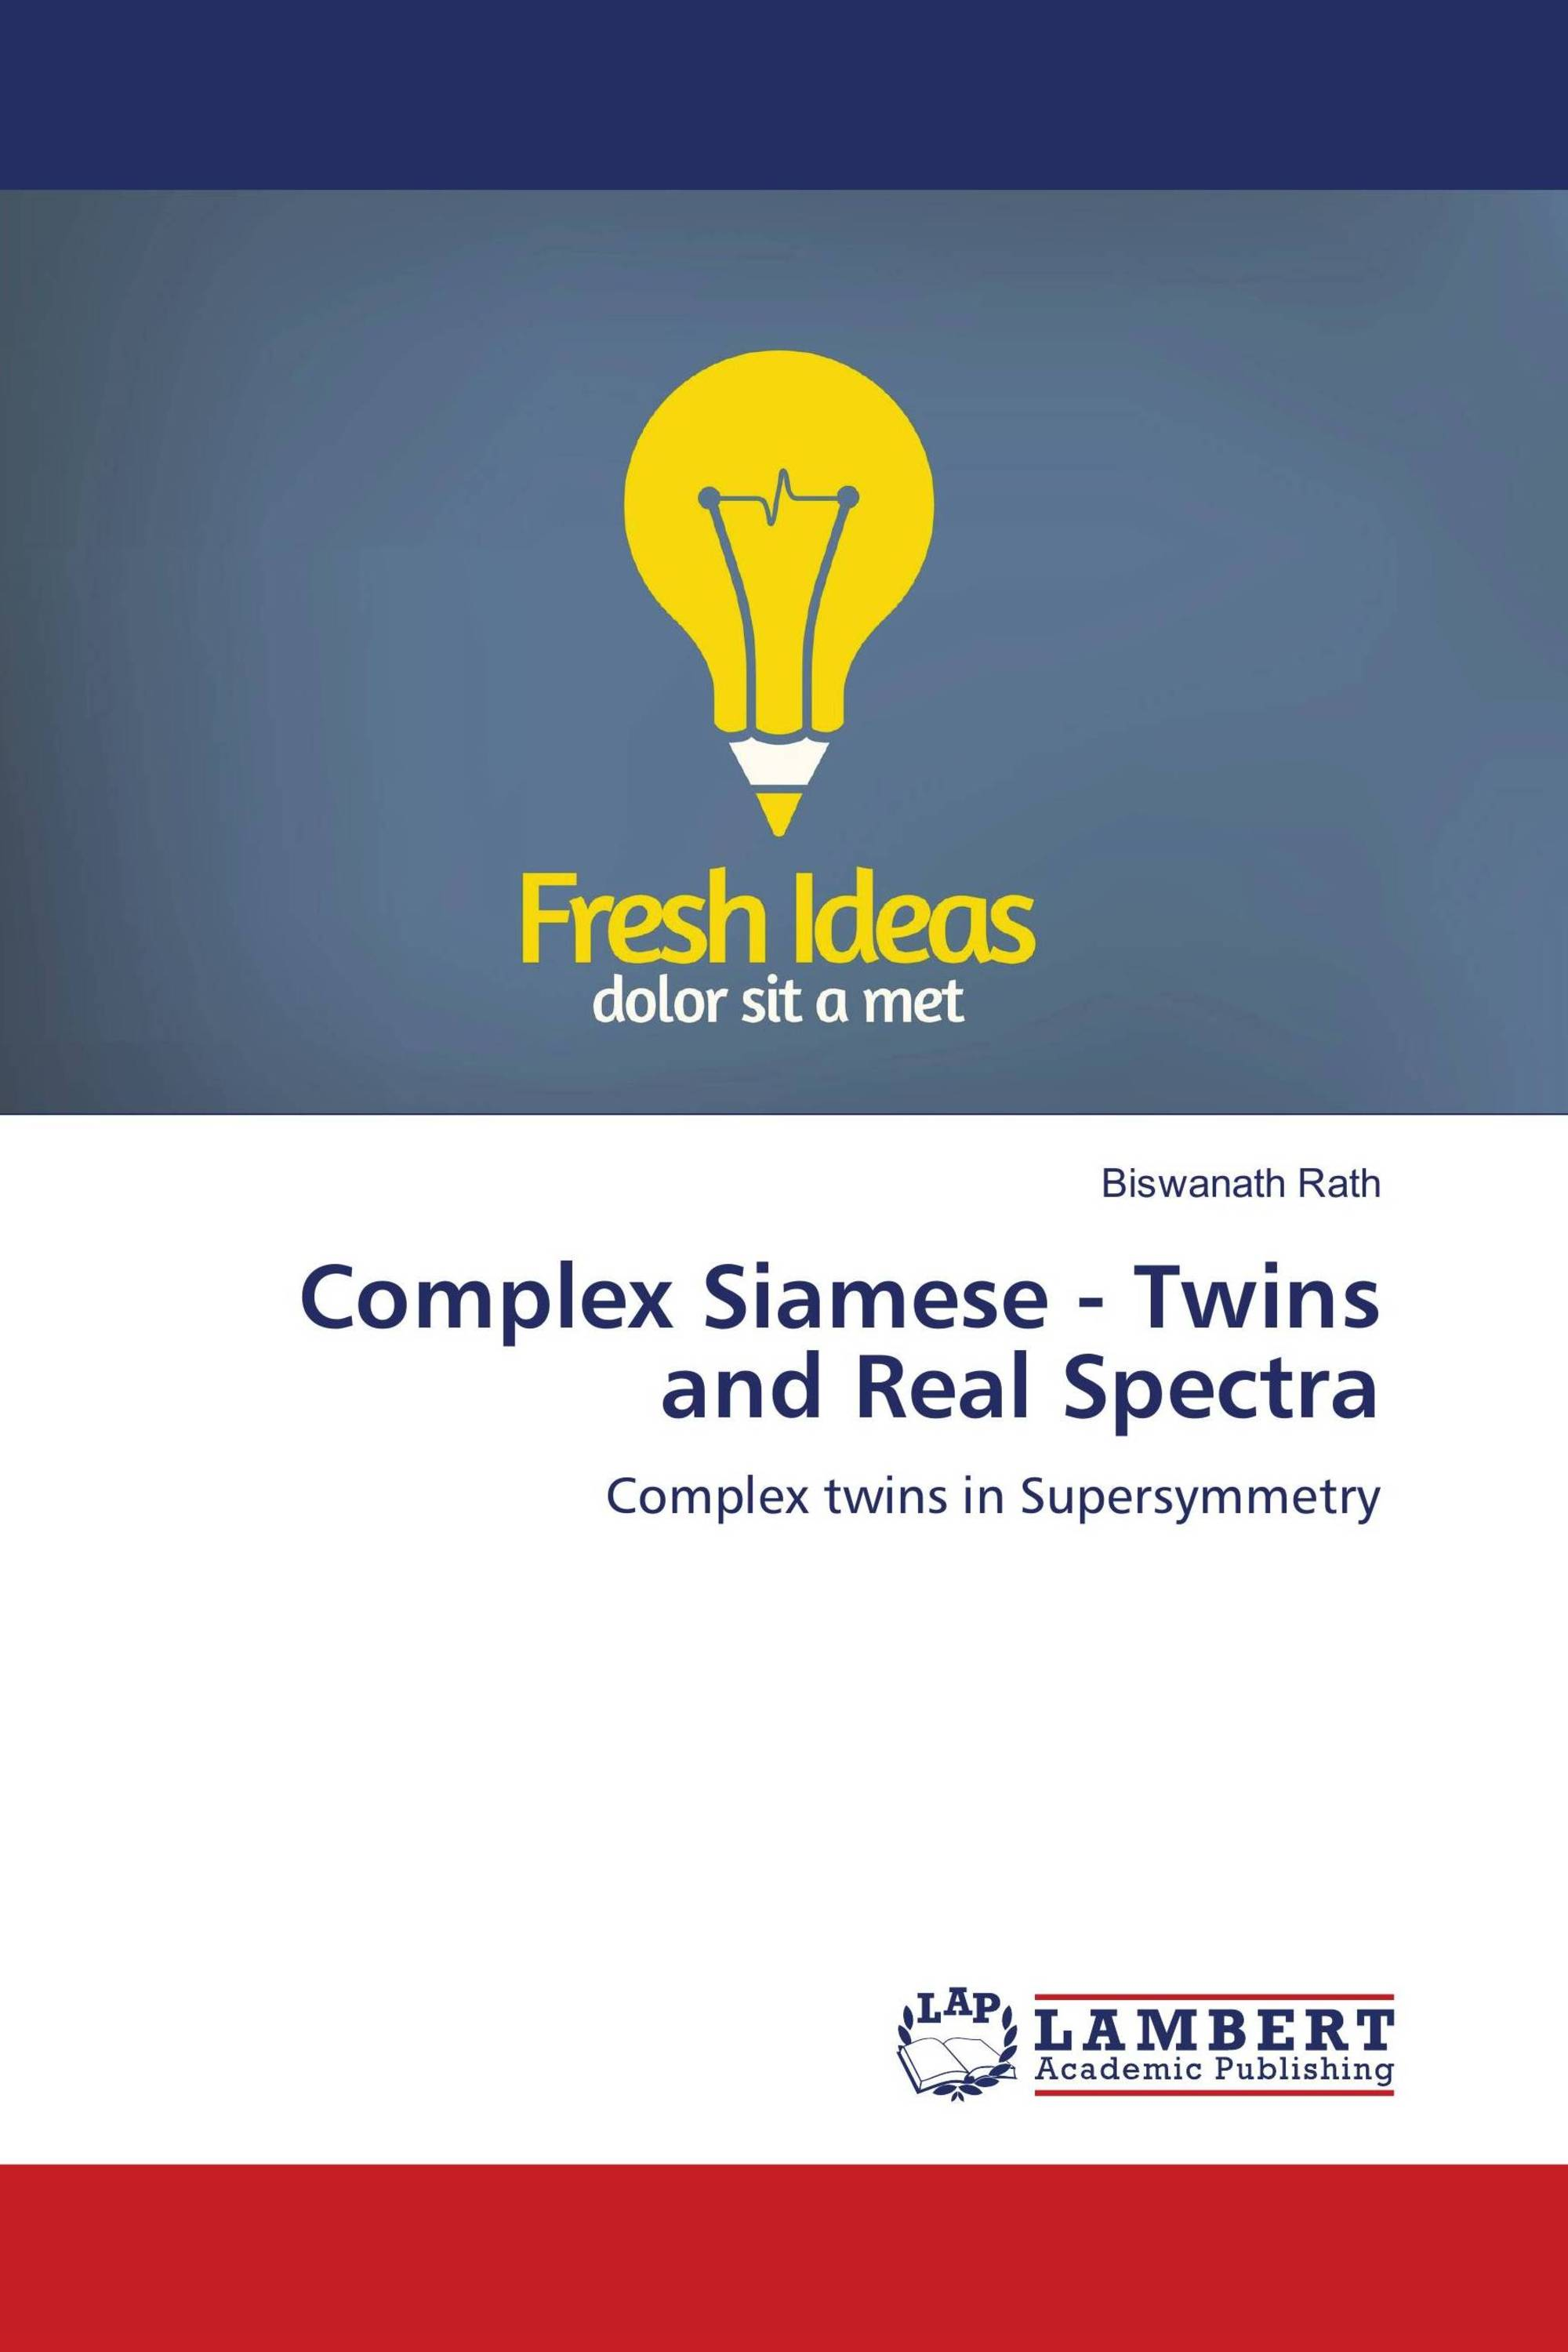 Complex Siamese - Twins and Real Spectra